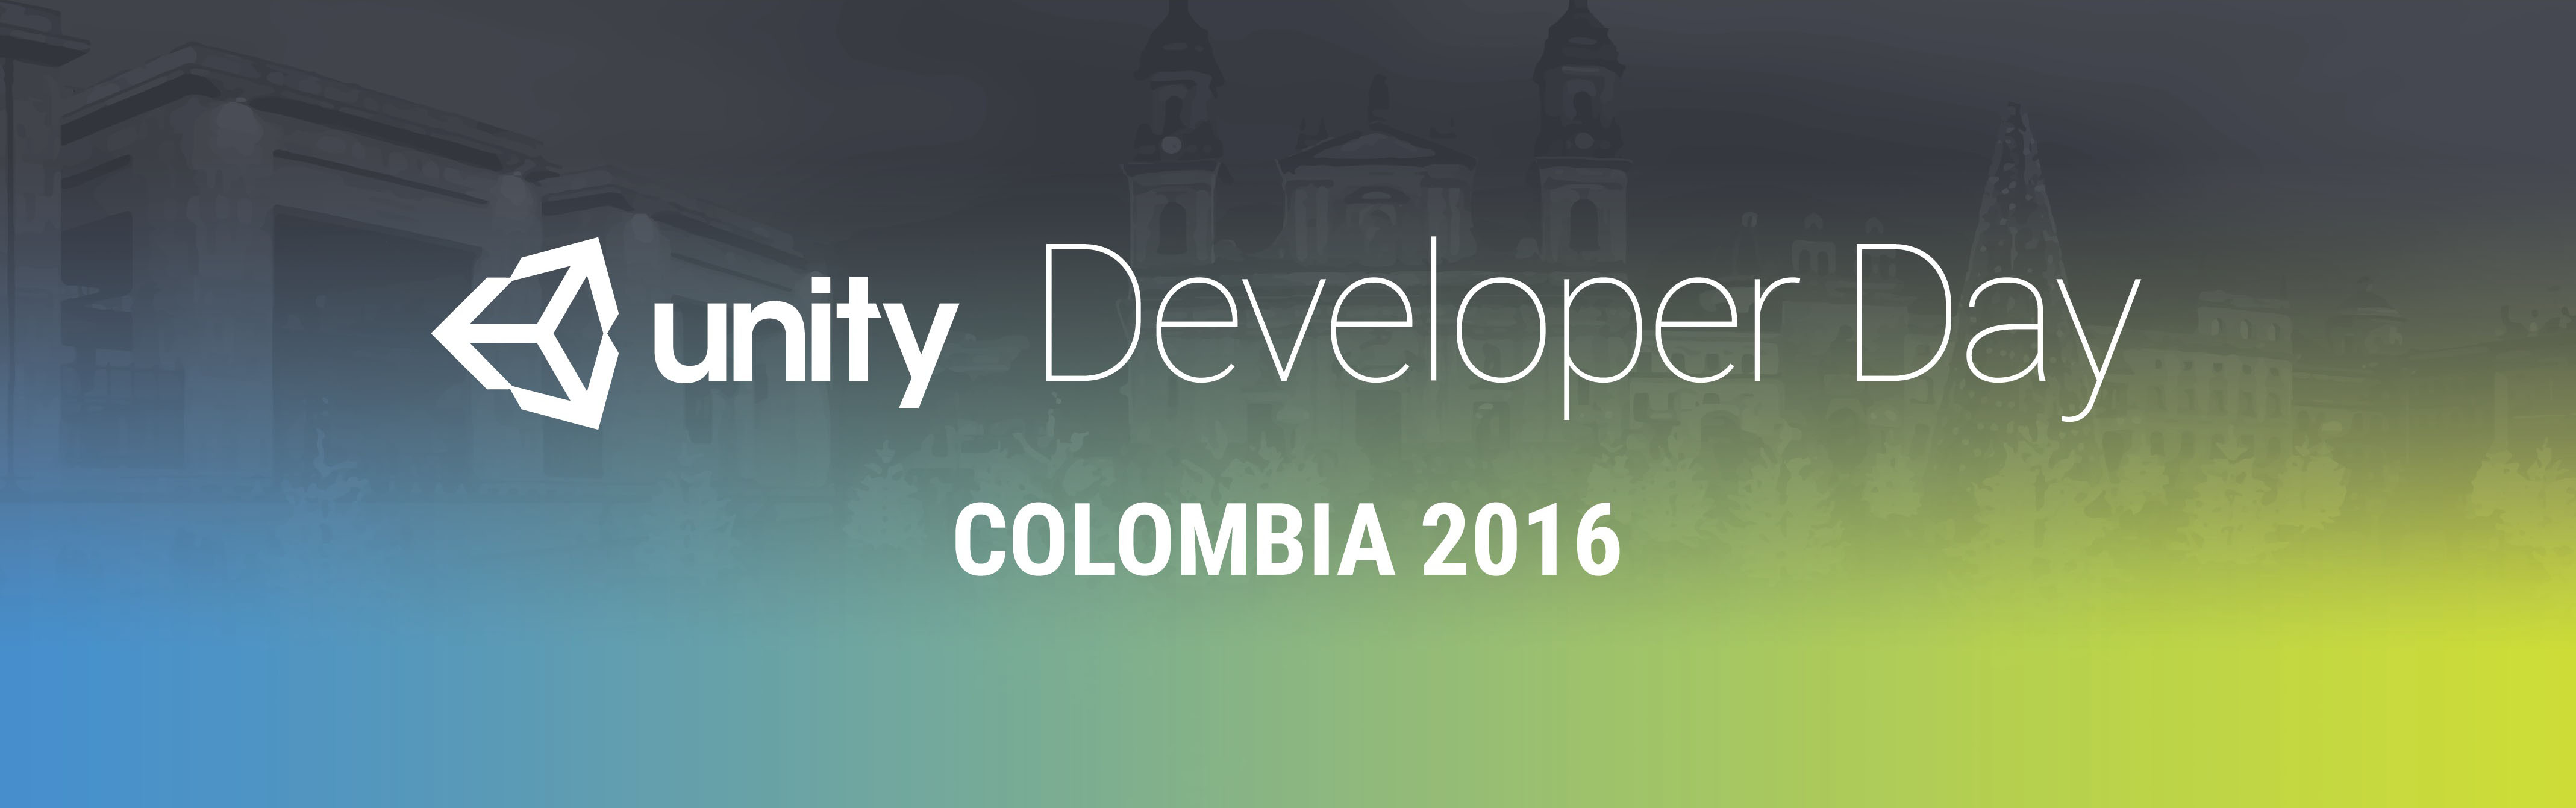 Unity Developer Day: Bogota 2016